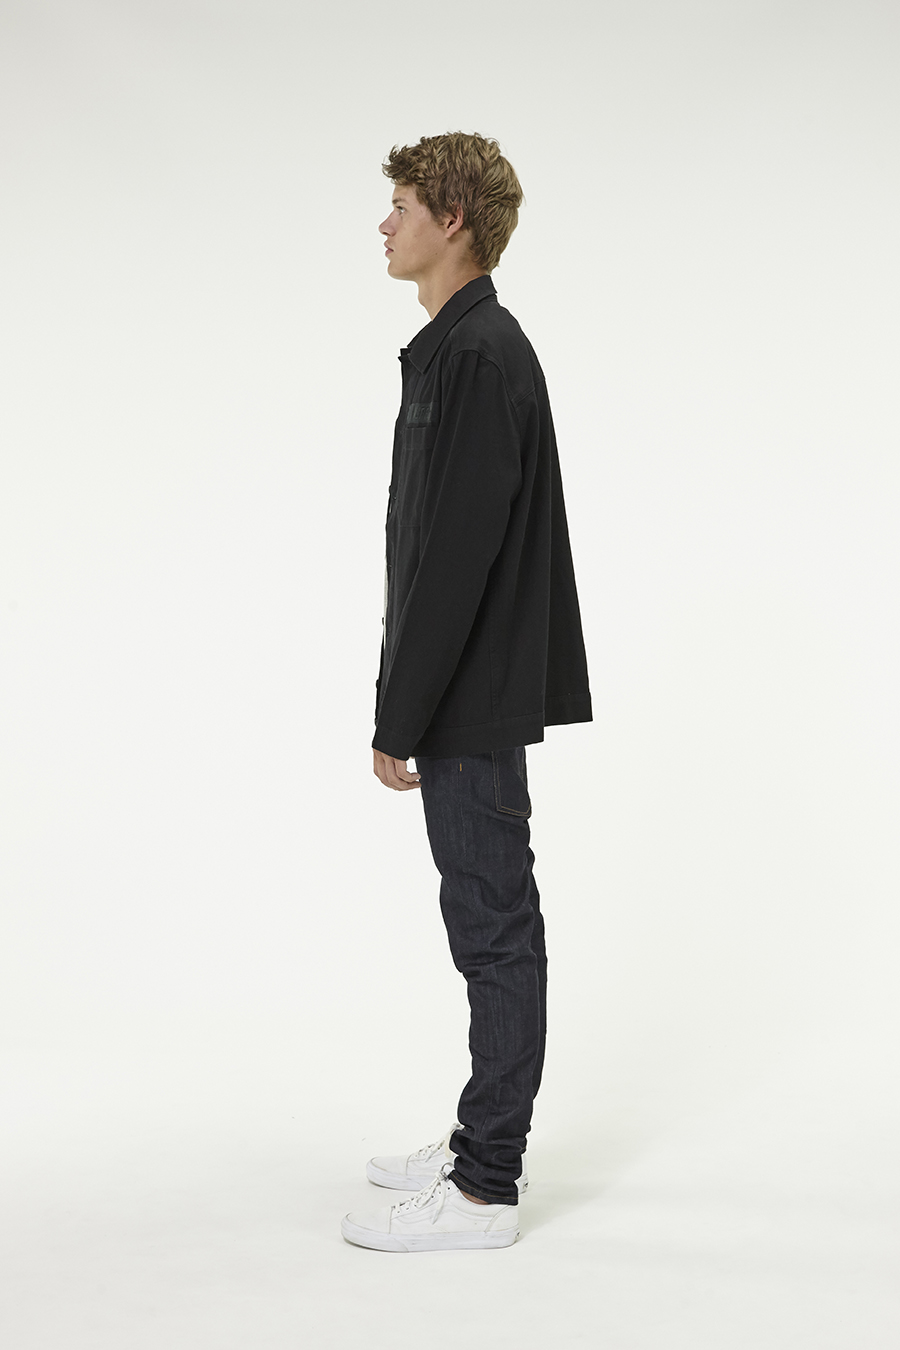 Huffer_Q3-16_M-Everyday-Shacket_Black-02